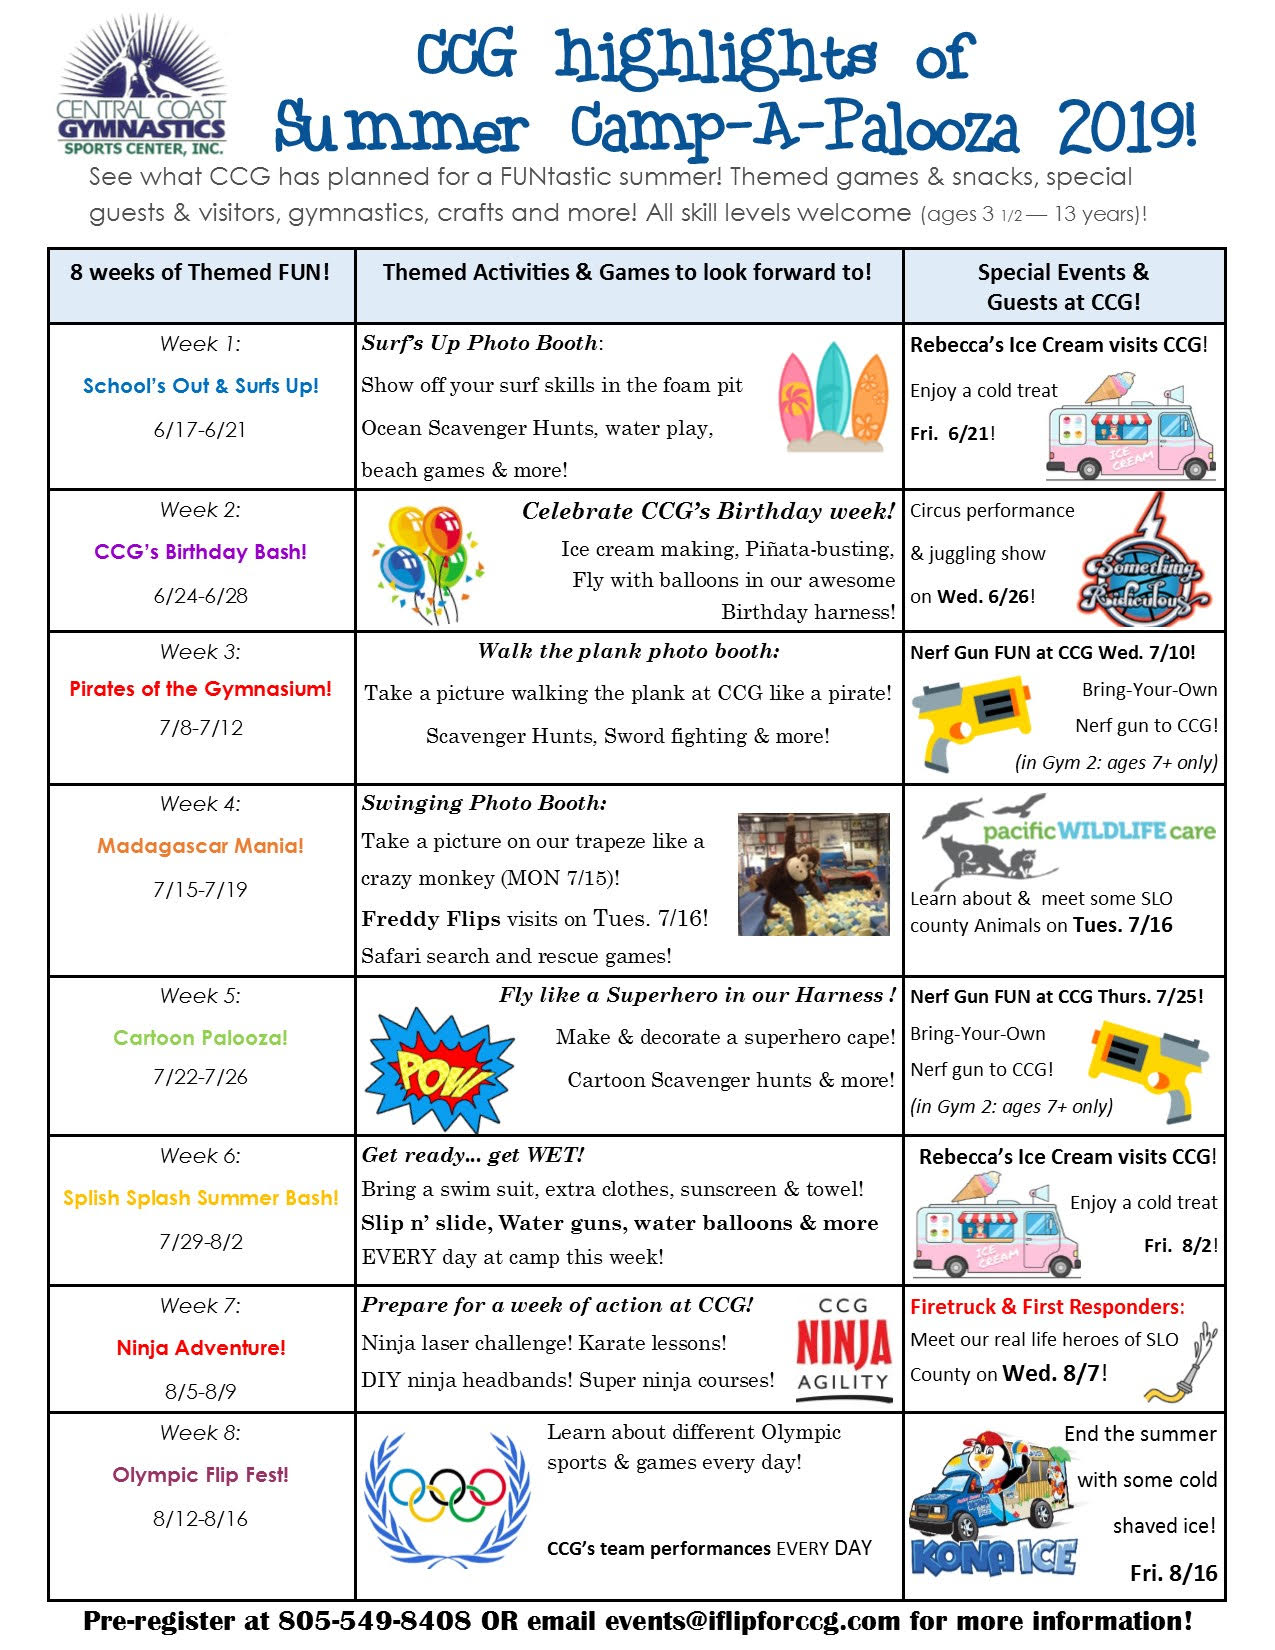 Camp A Palooza weekly fun calendar 2019